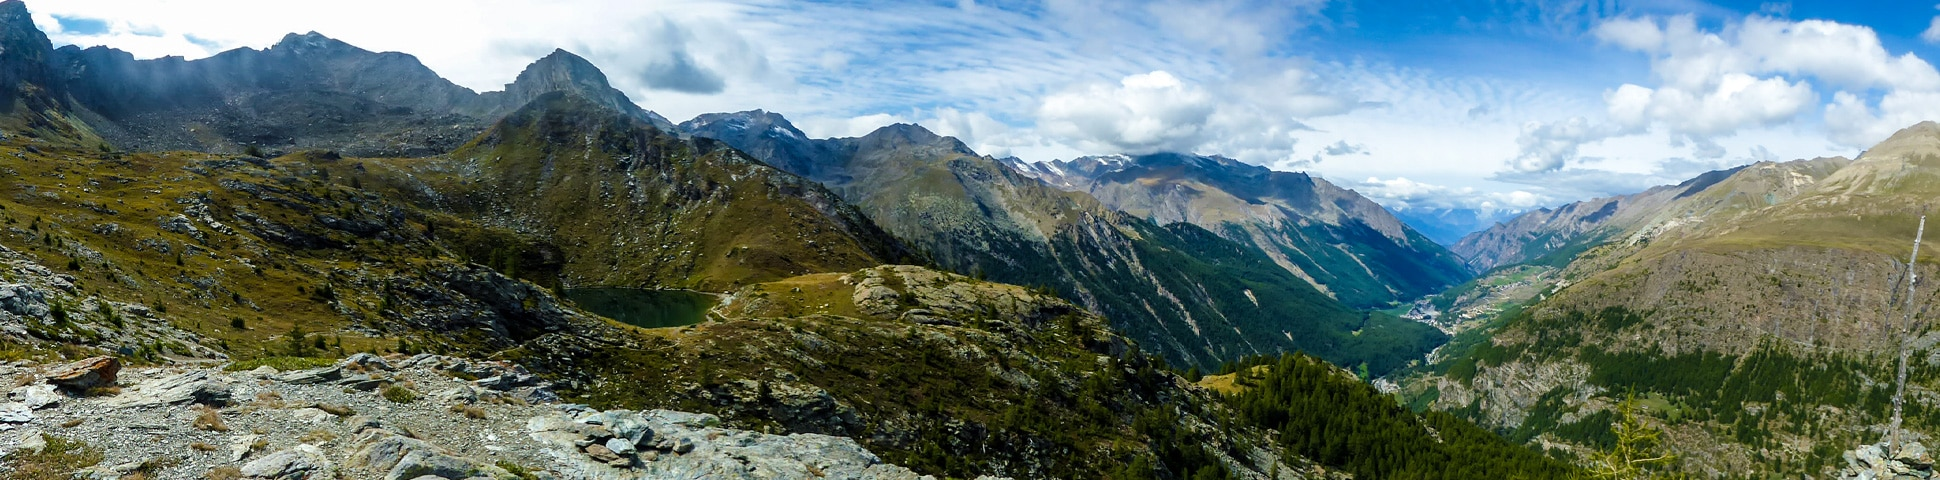 Panoramic view from the top of Lago di Loie hike in Gran Paradiso National Park, Italy